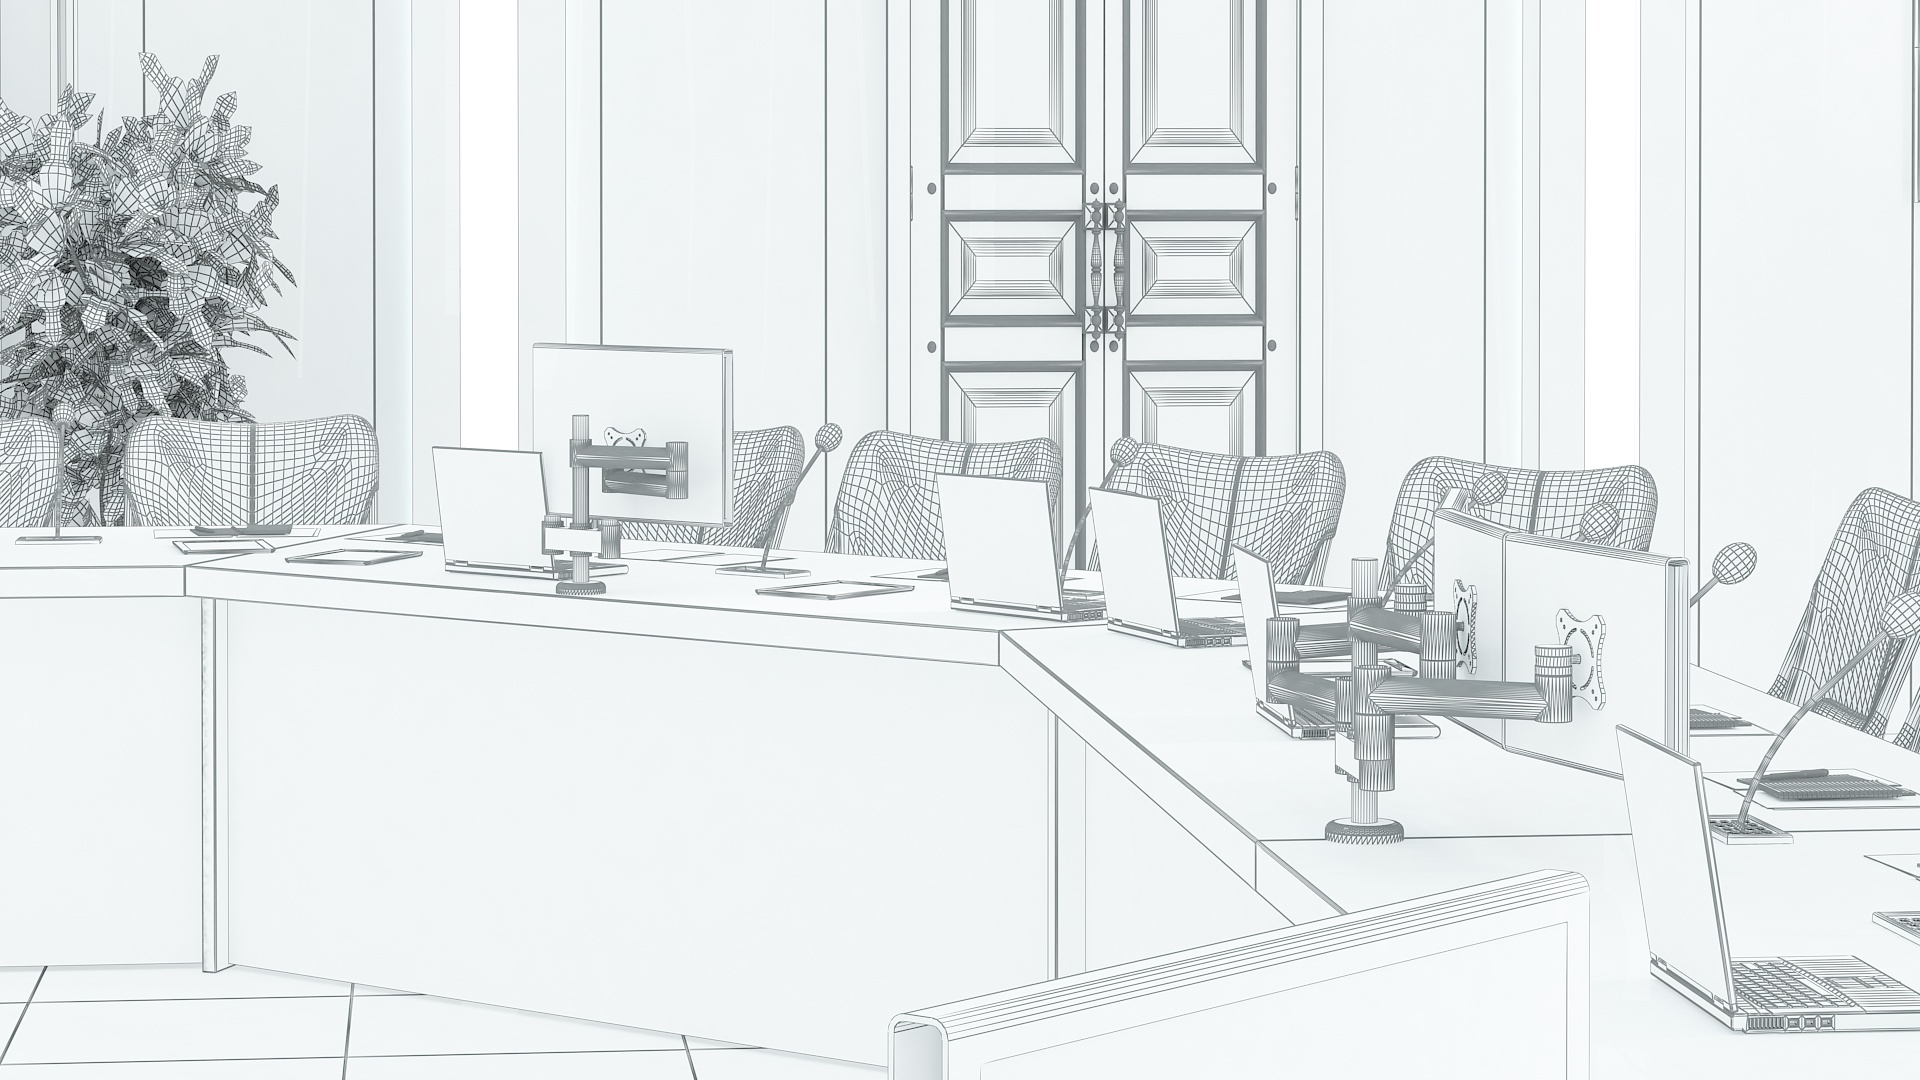 meeting room 1 3d model 3ds max dxf dwg 288140